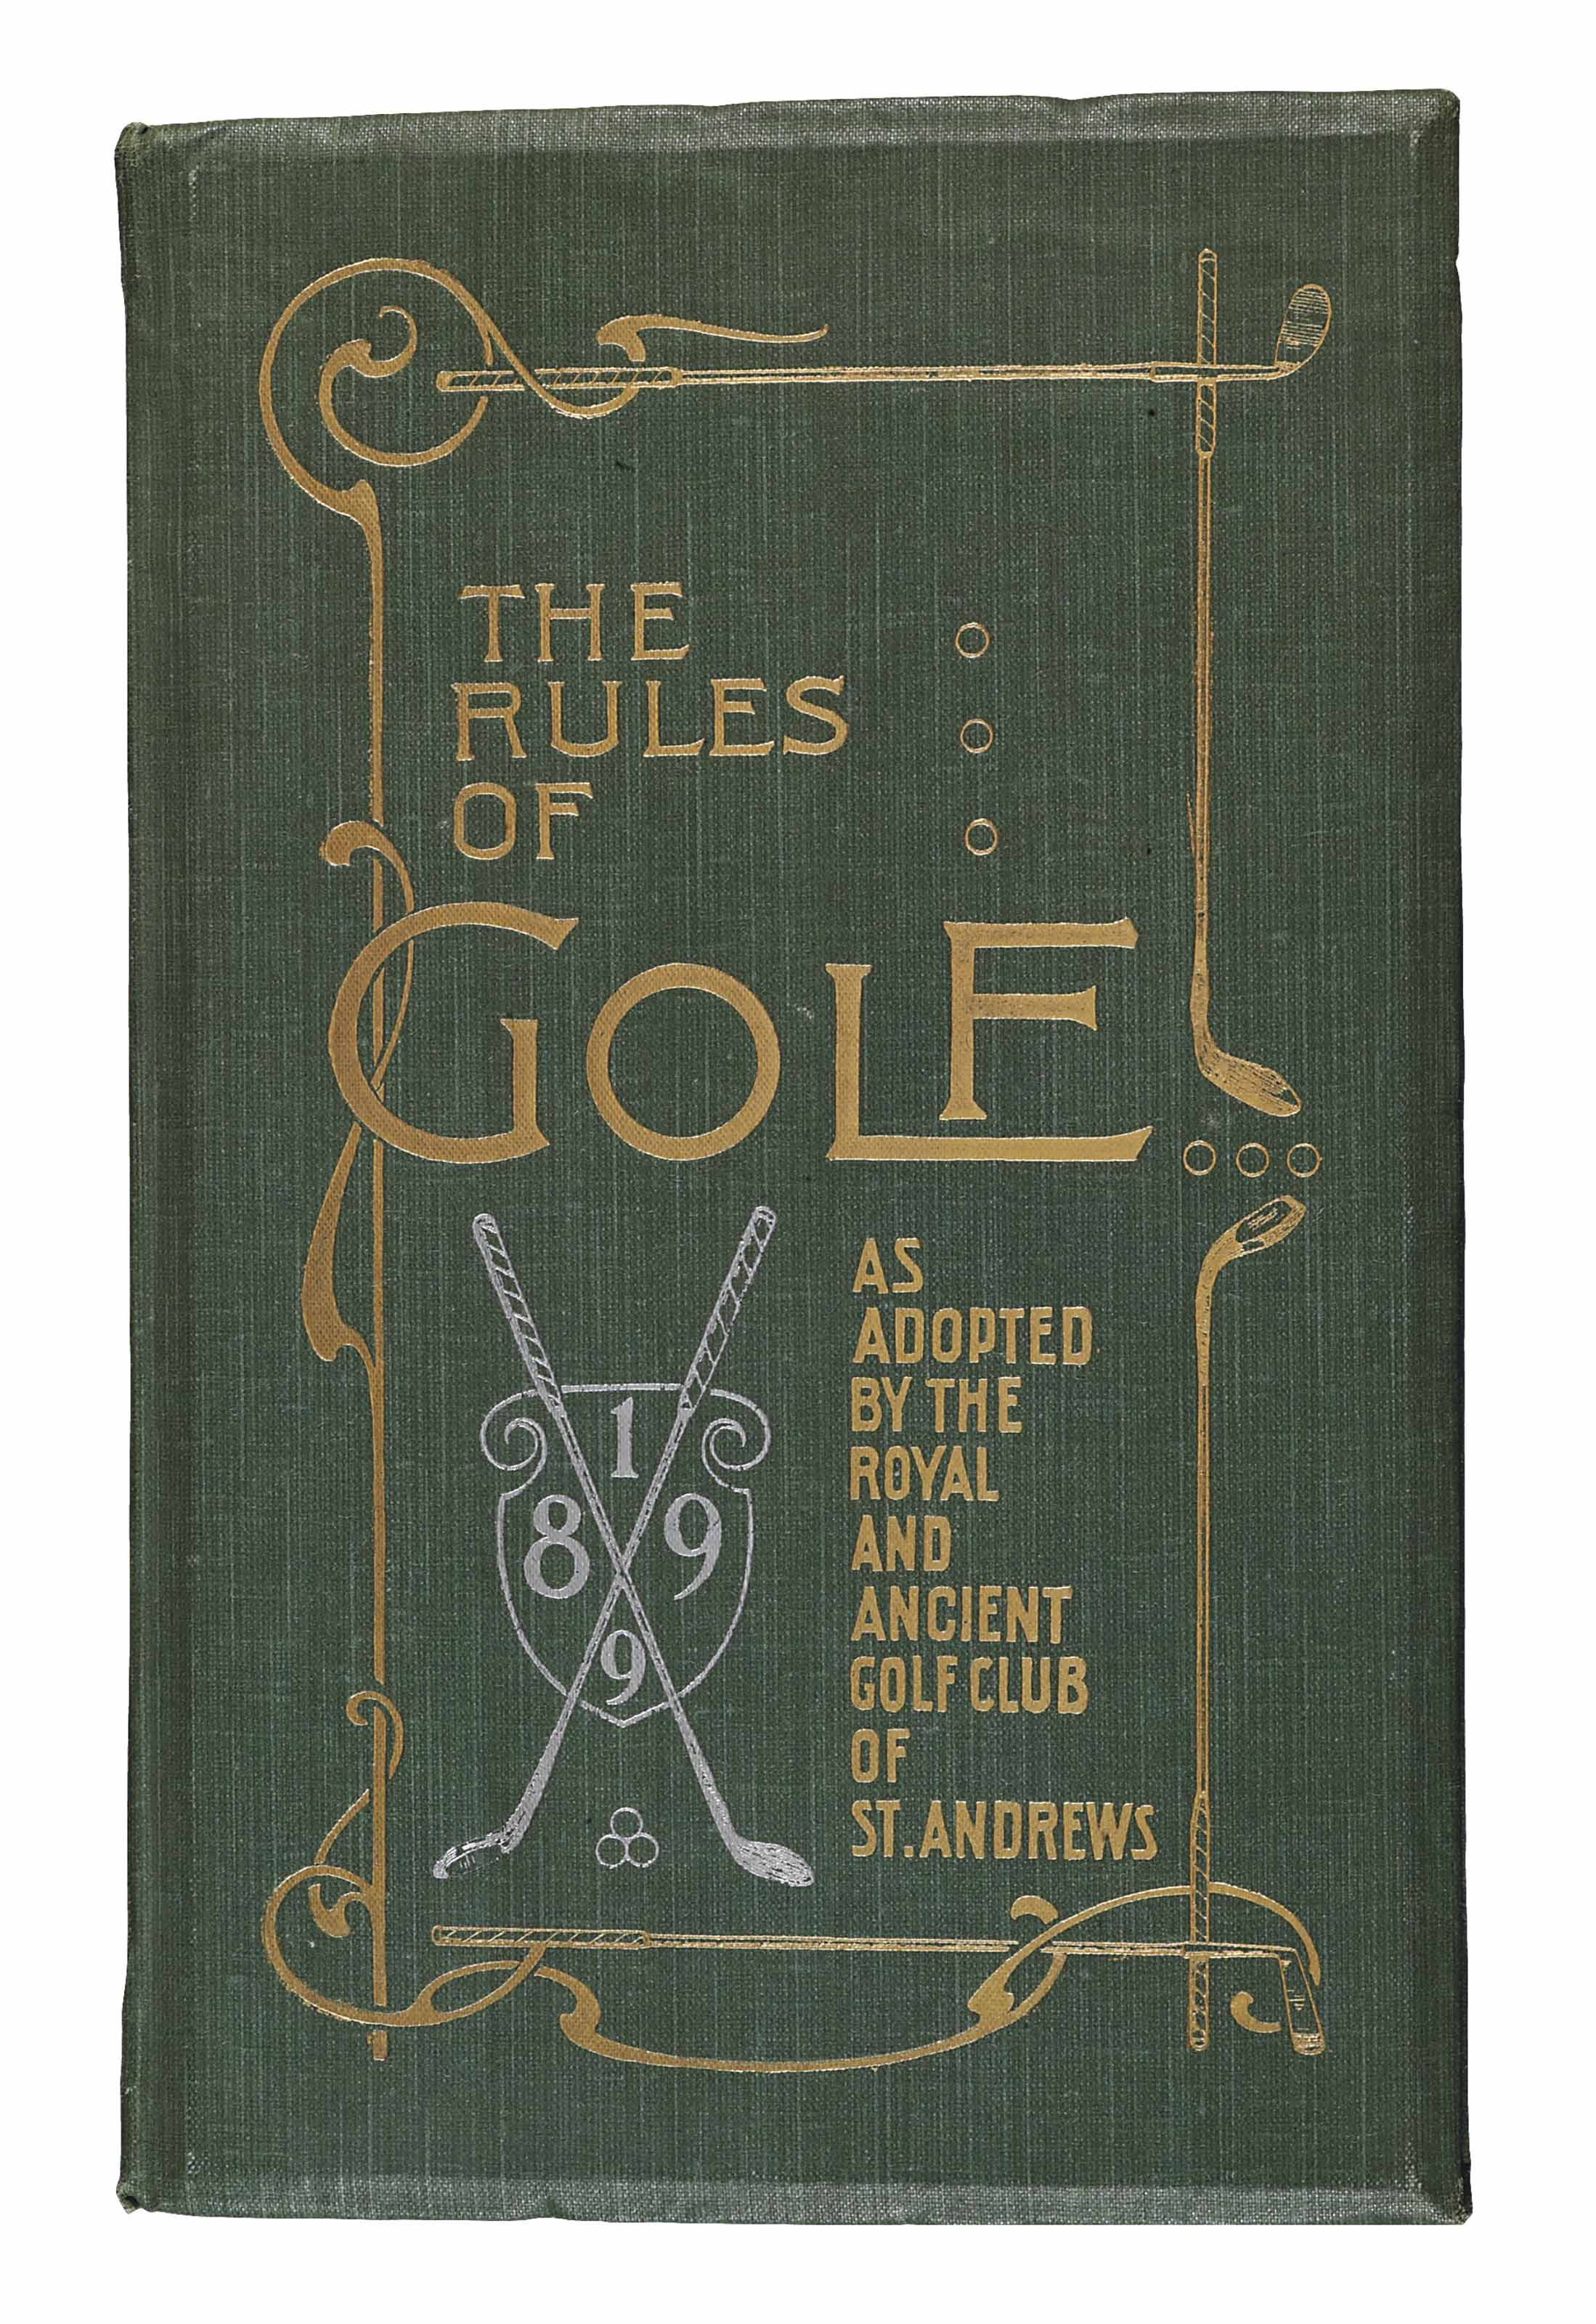 RULES FOR THE GAME OF GOLF AS APPROVED BY THE ROYAL AND ANCIENT GOLF CLUB OF ST. ANDREWS, SEPTEMBER 1899. ST. ANDREWS: W.C. HENDERSON, 1899.